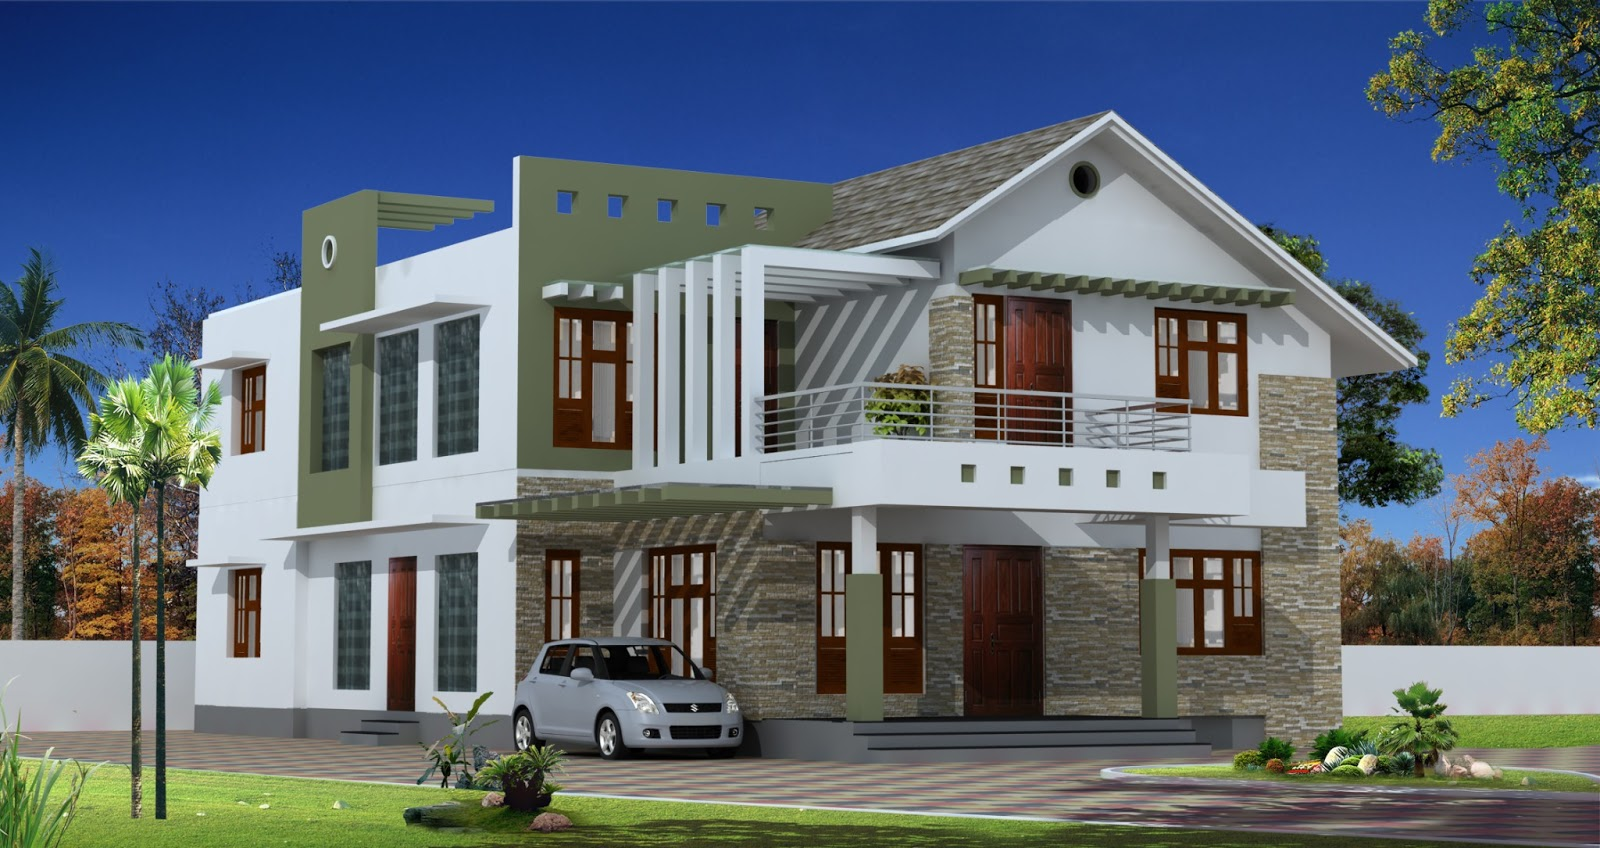 Latest Home Designs - Original Home Designs